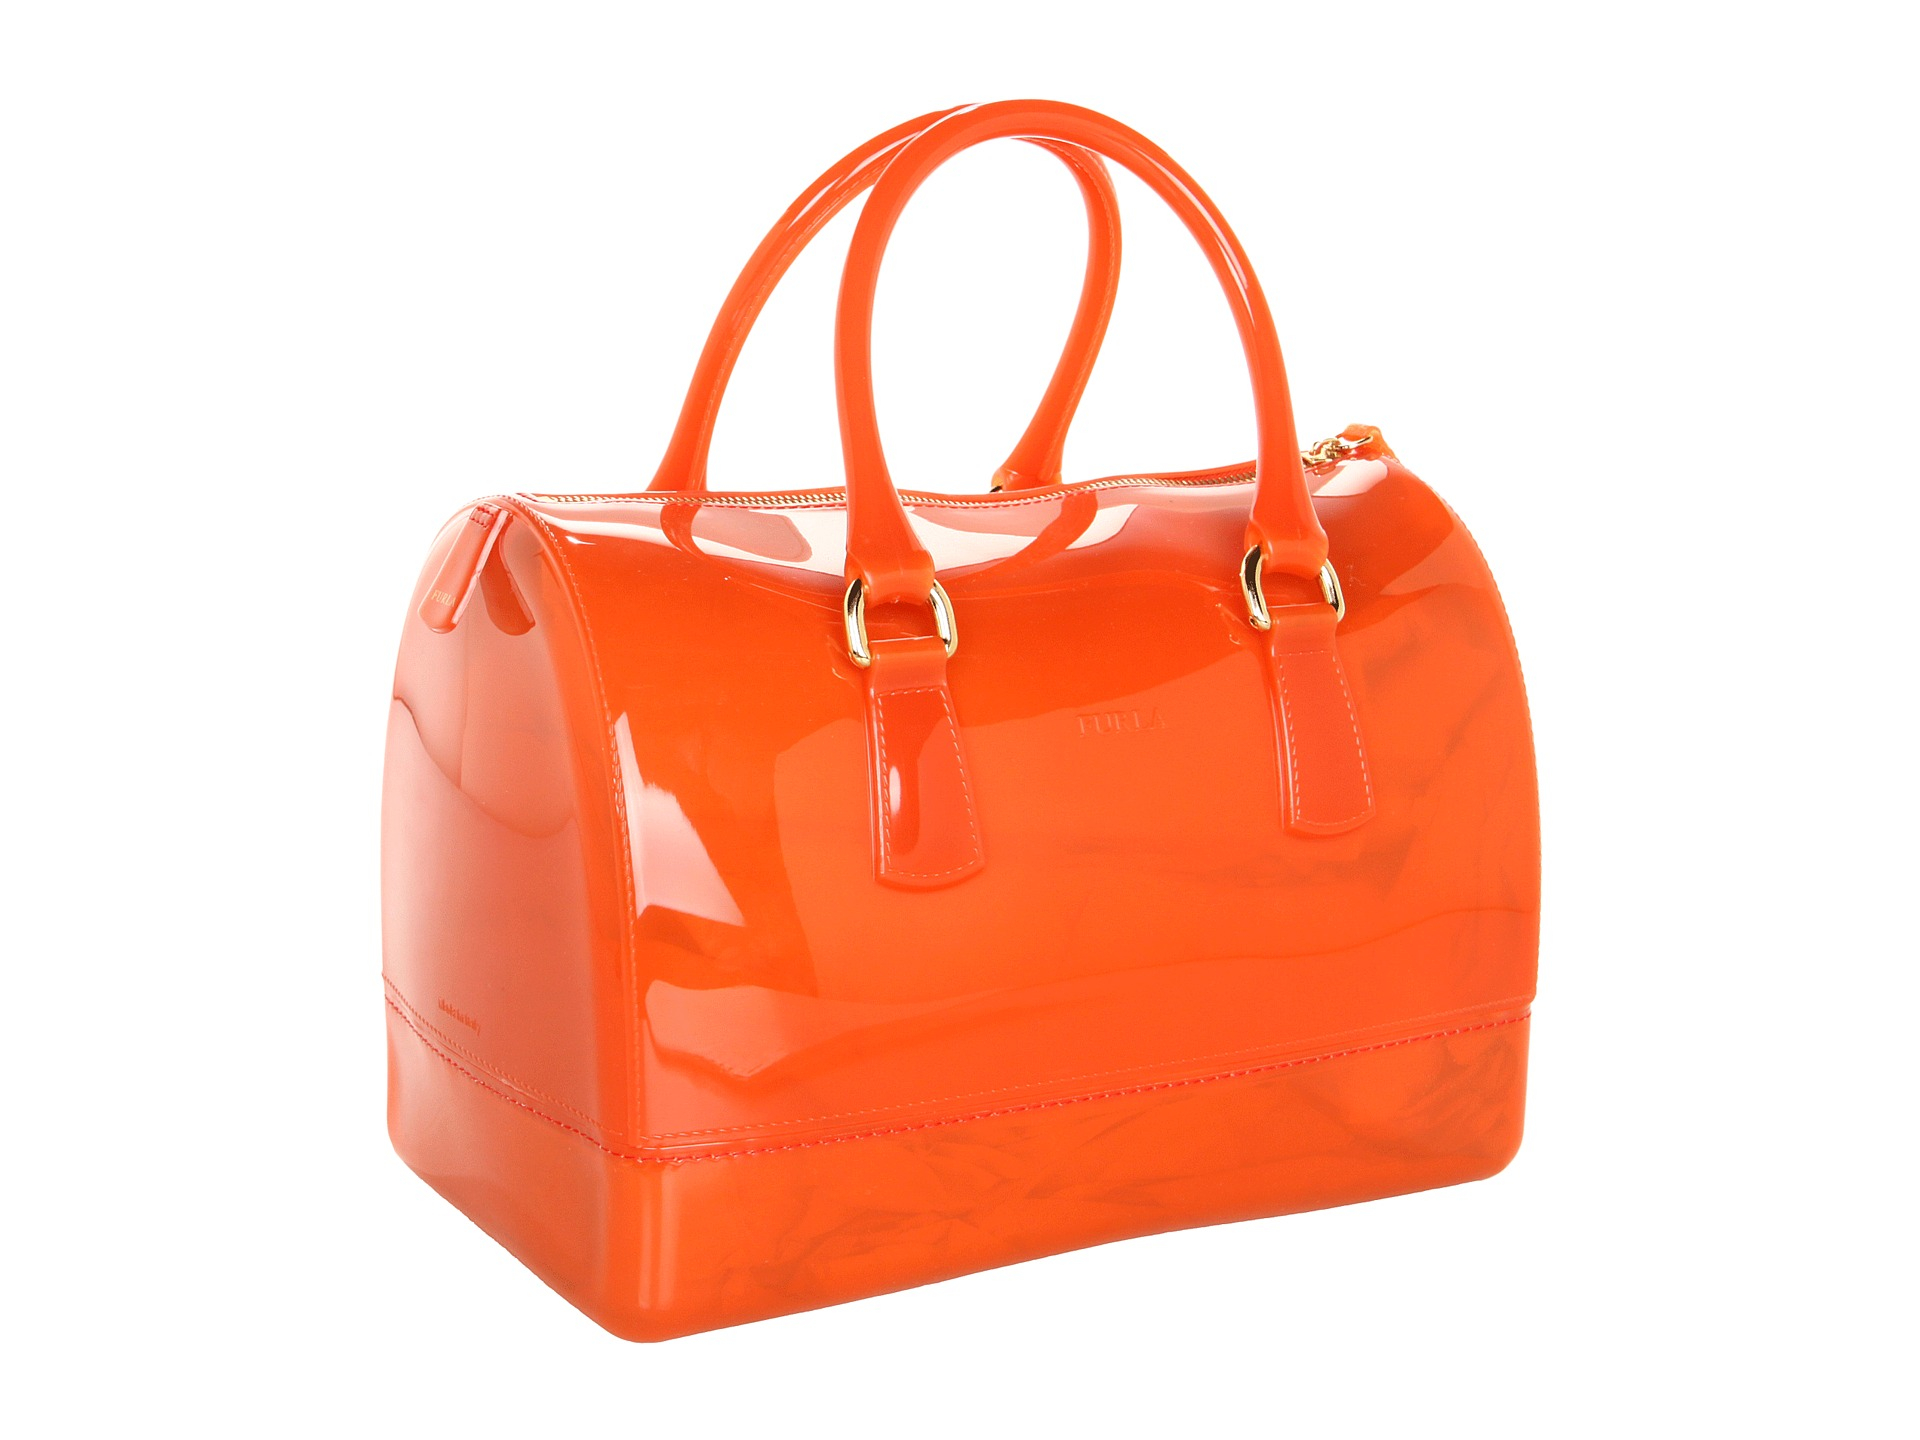 To acquire Candy Furla bags pictures picture trends